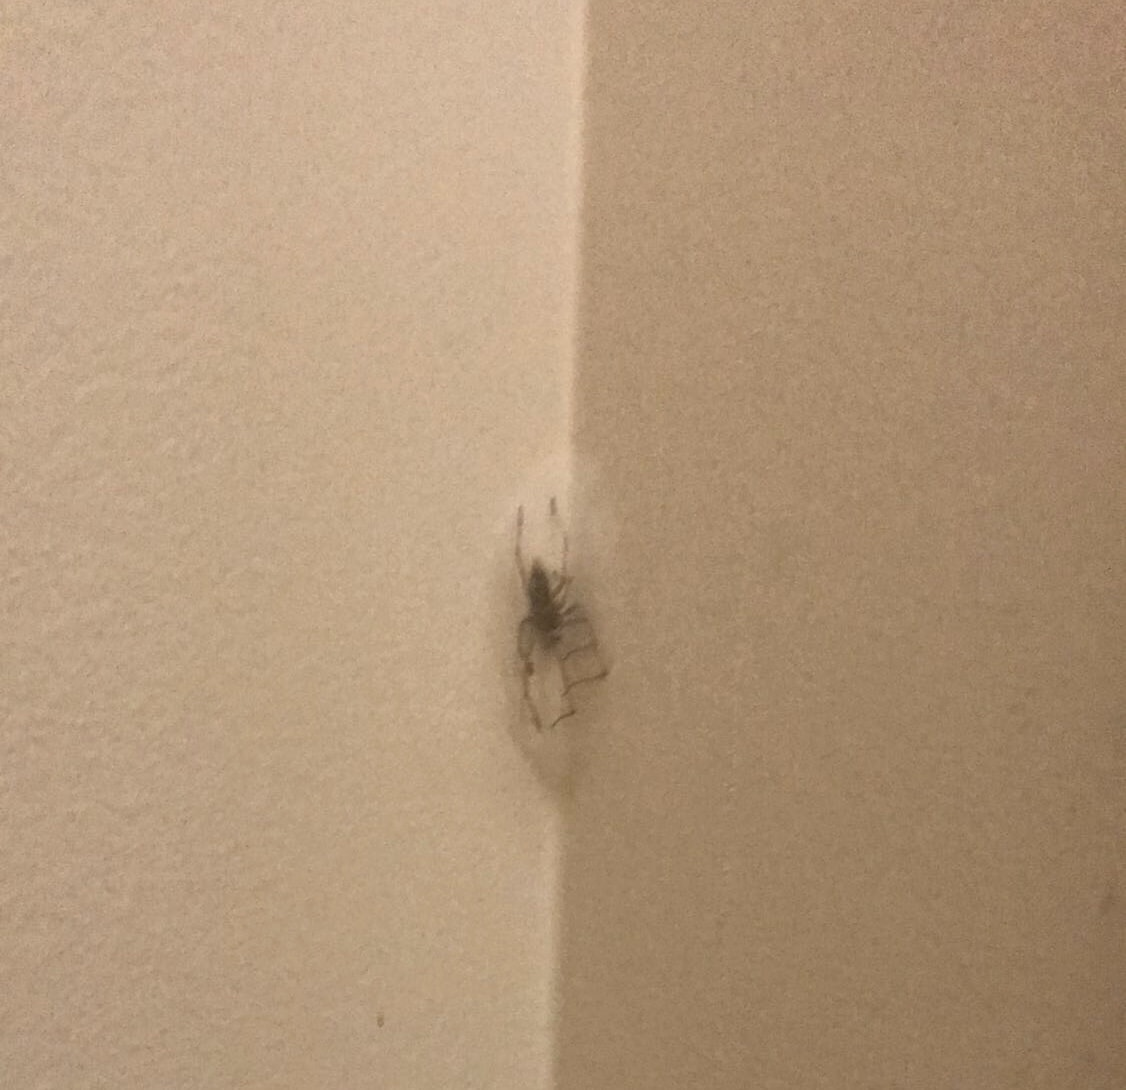 Picture of Cheiracanthium mildei (Long-legged Sac Spider) - Male - Dorsal,Webs,In Retreat